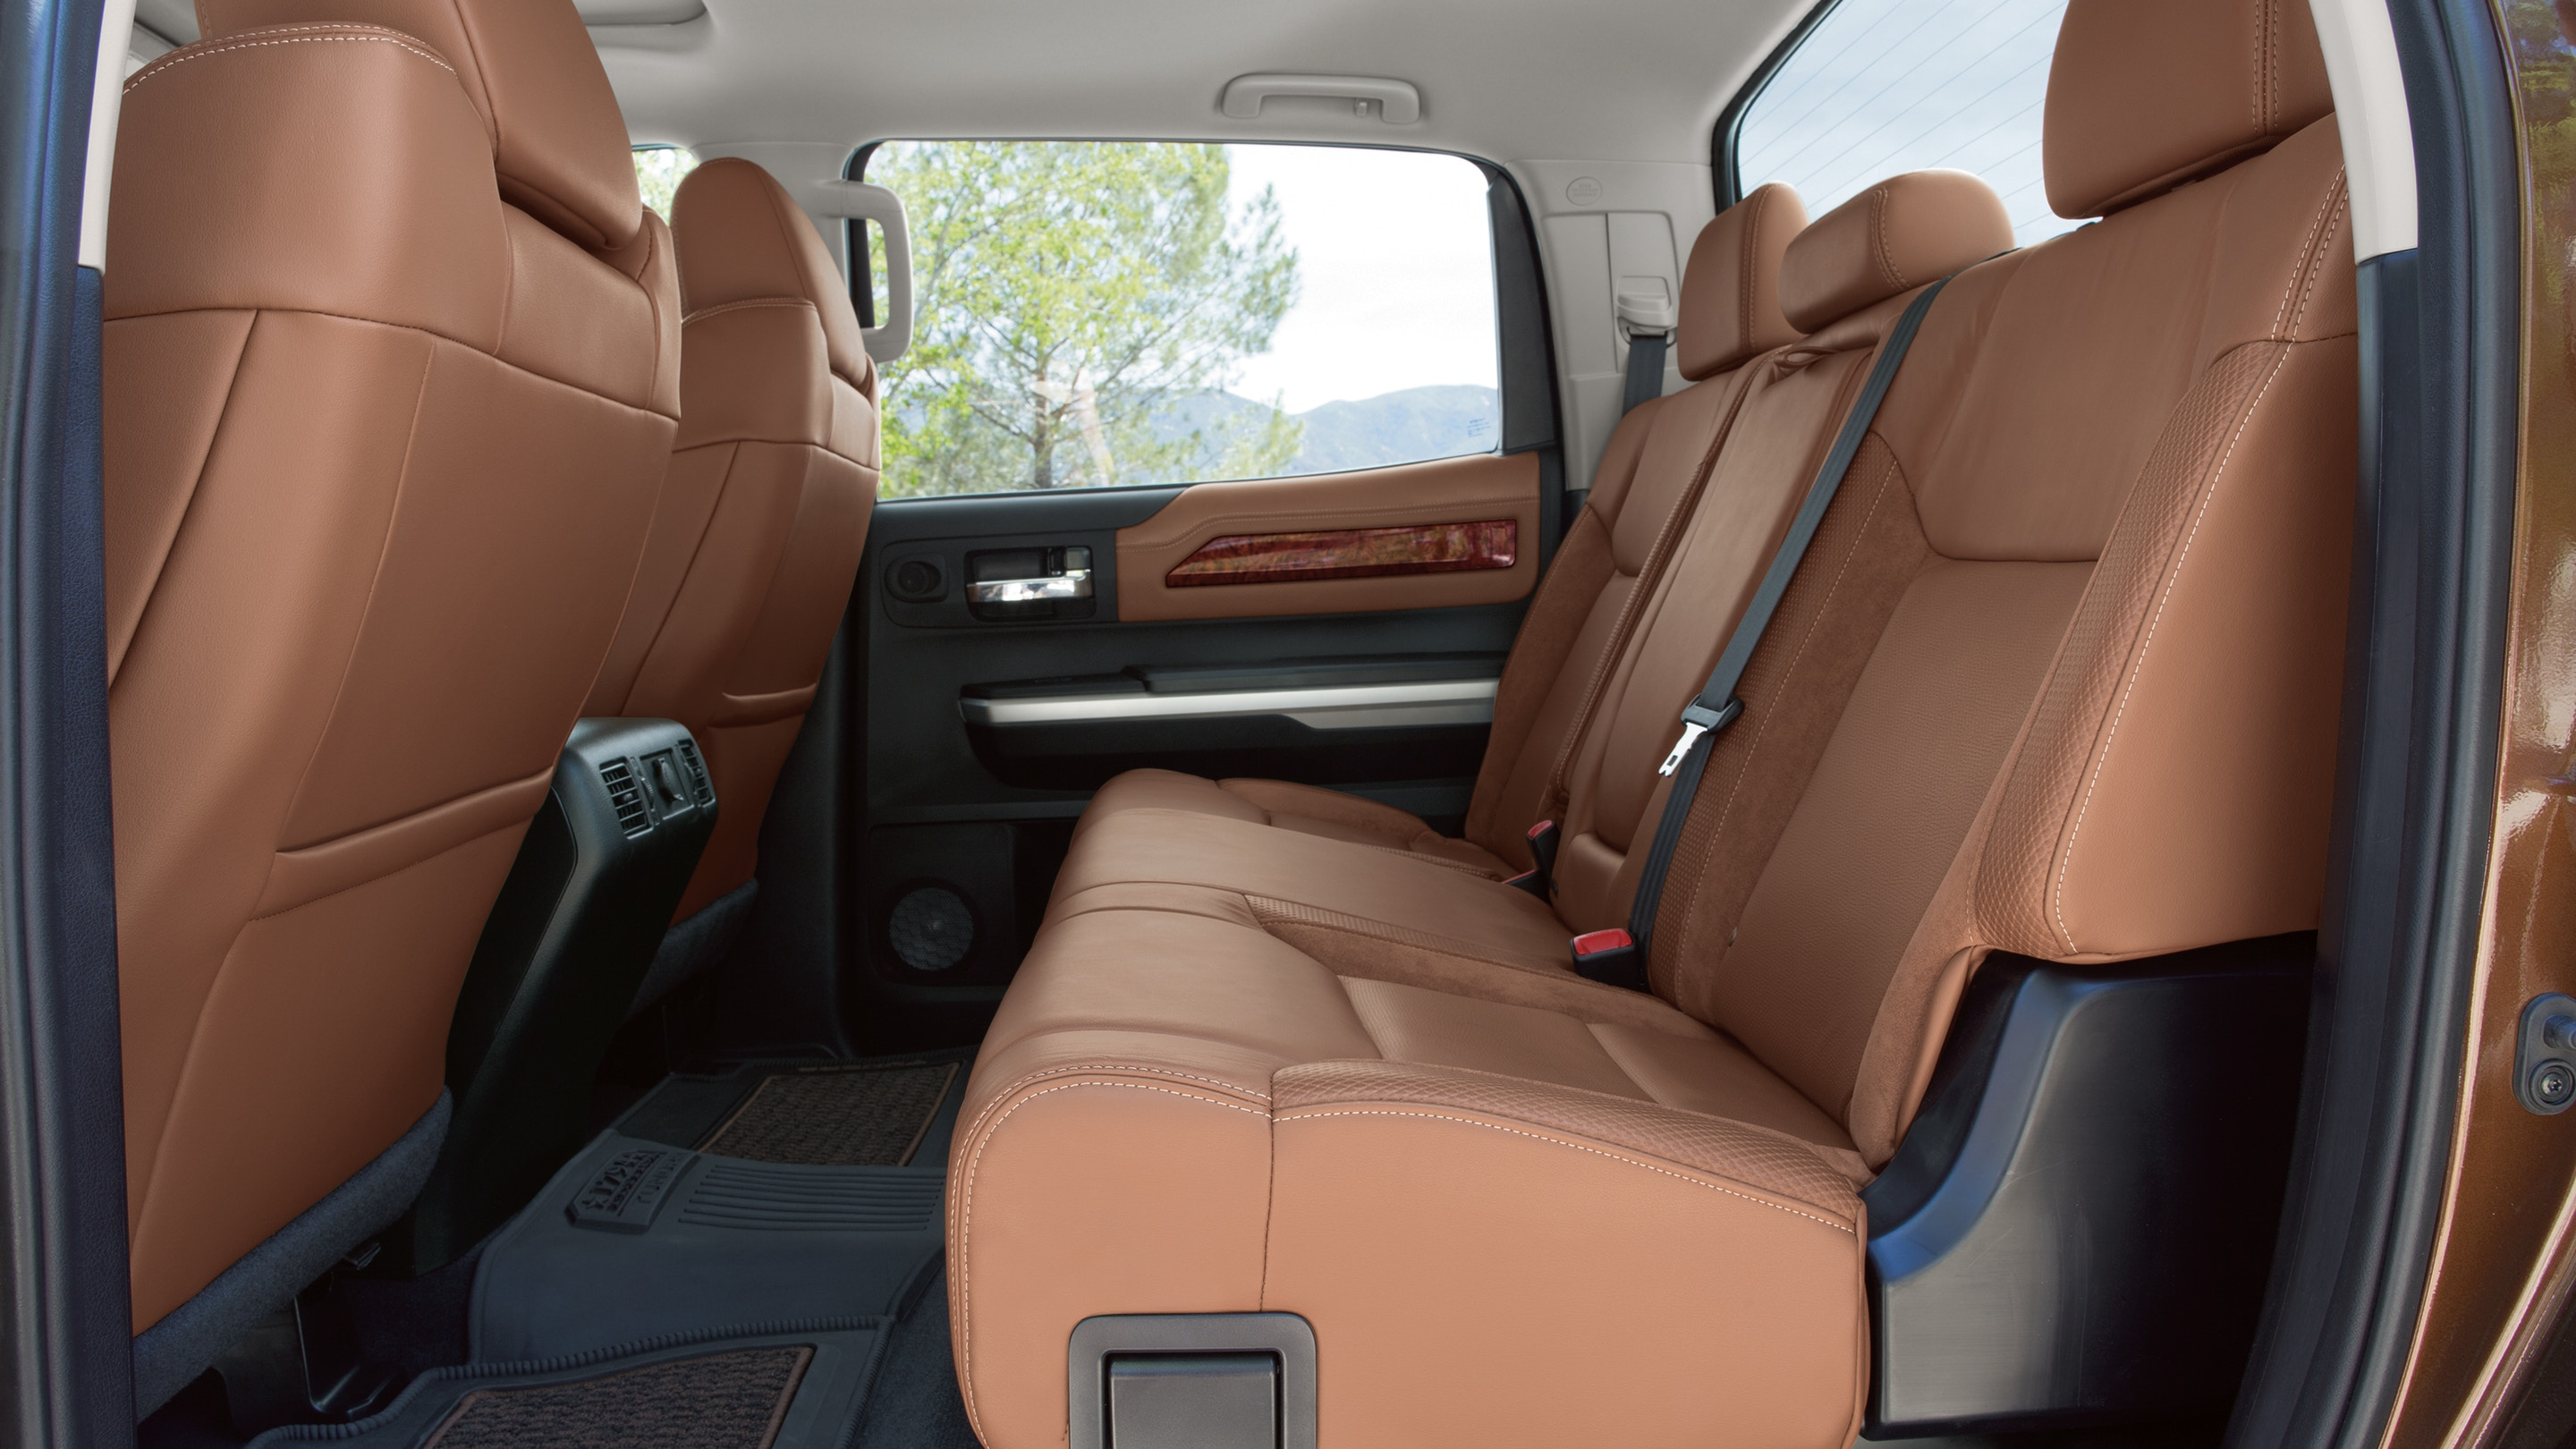 Luxurious Seating Options in the 2019 Toyota Tundra